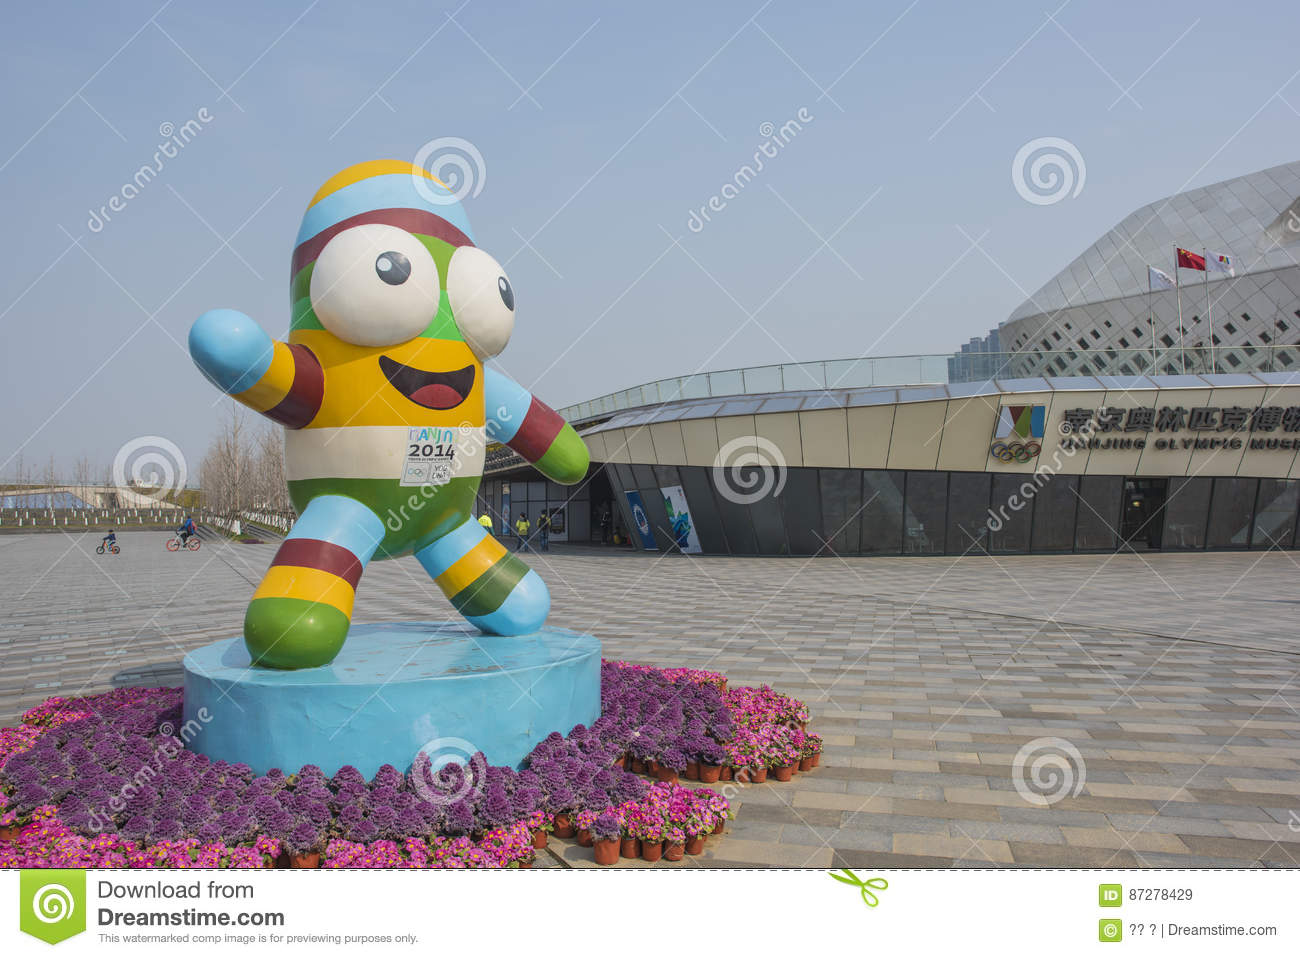 Nanjing-Jugend Olympische Spiele mascots le le